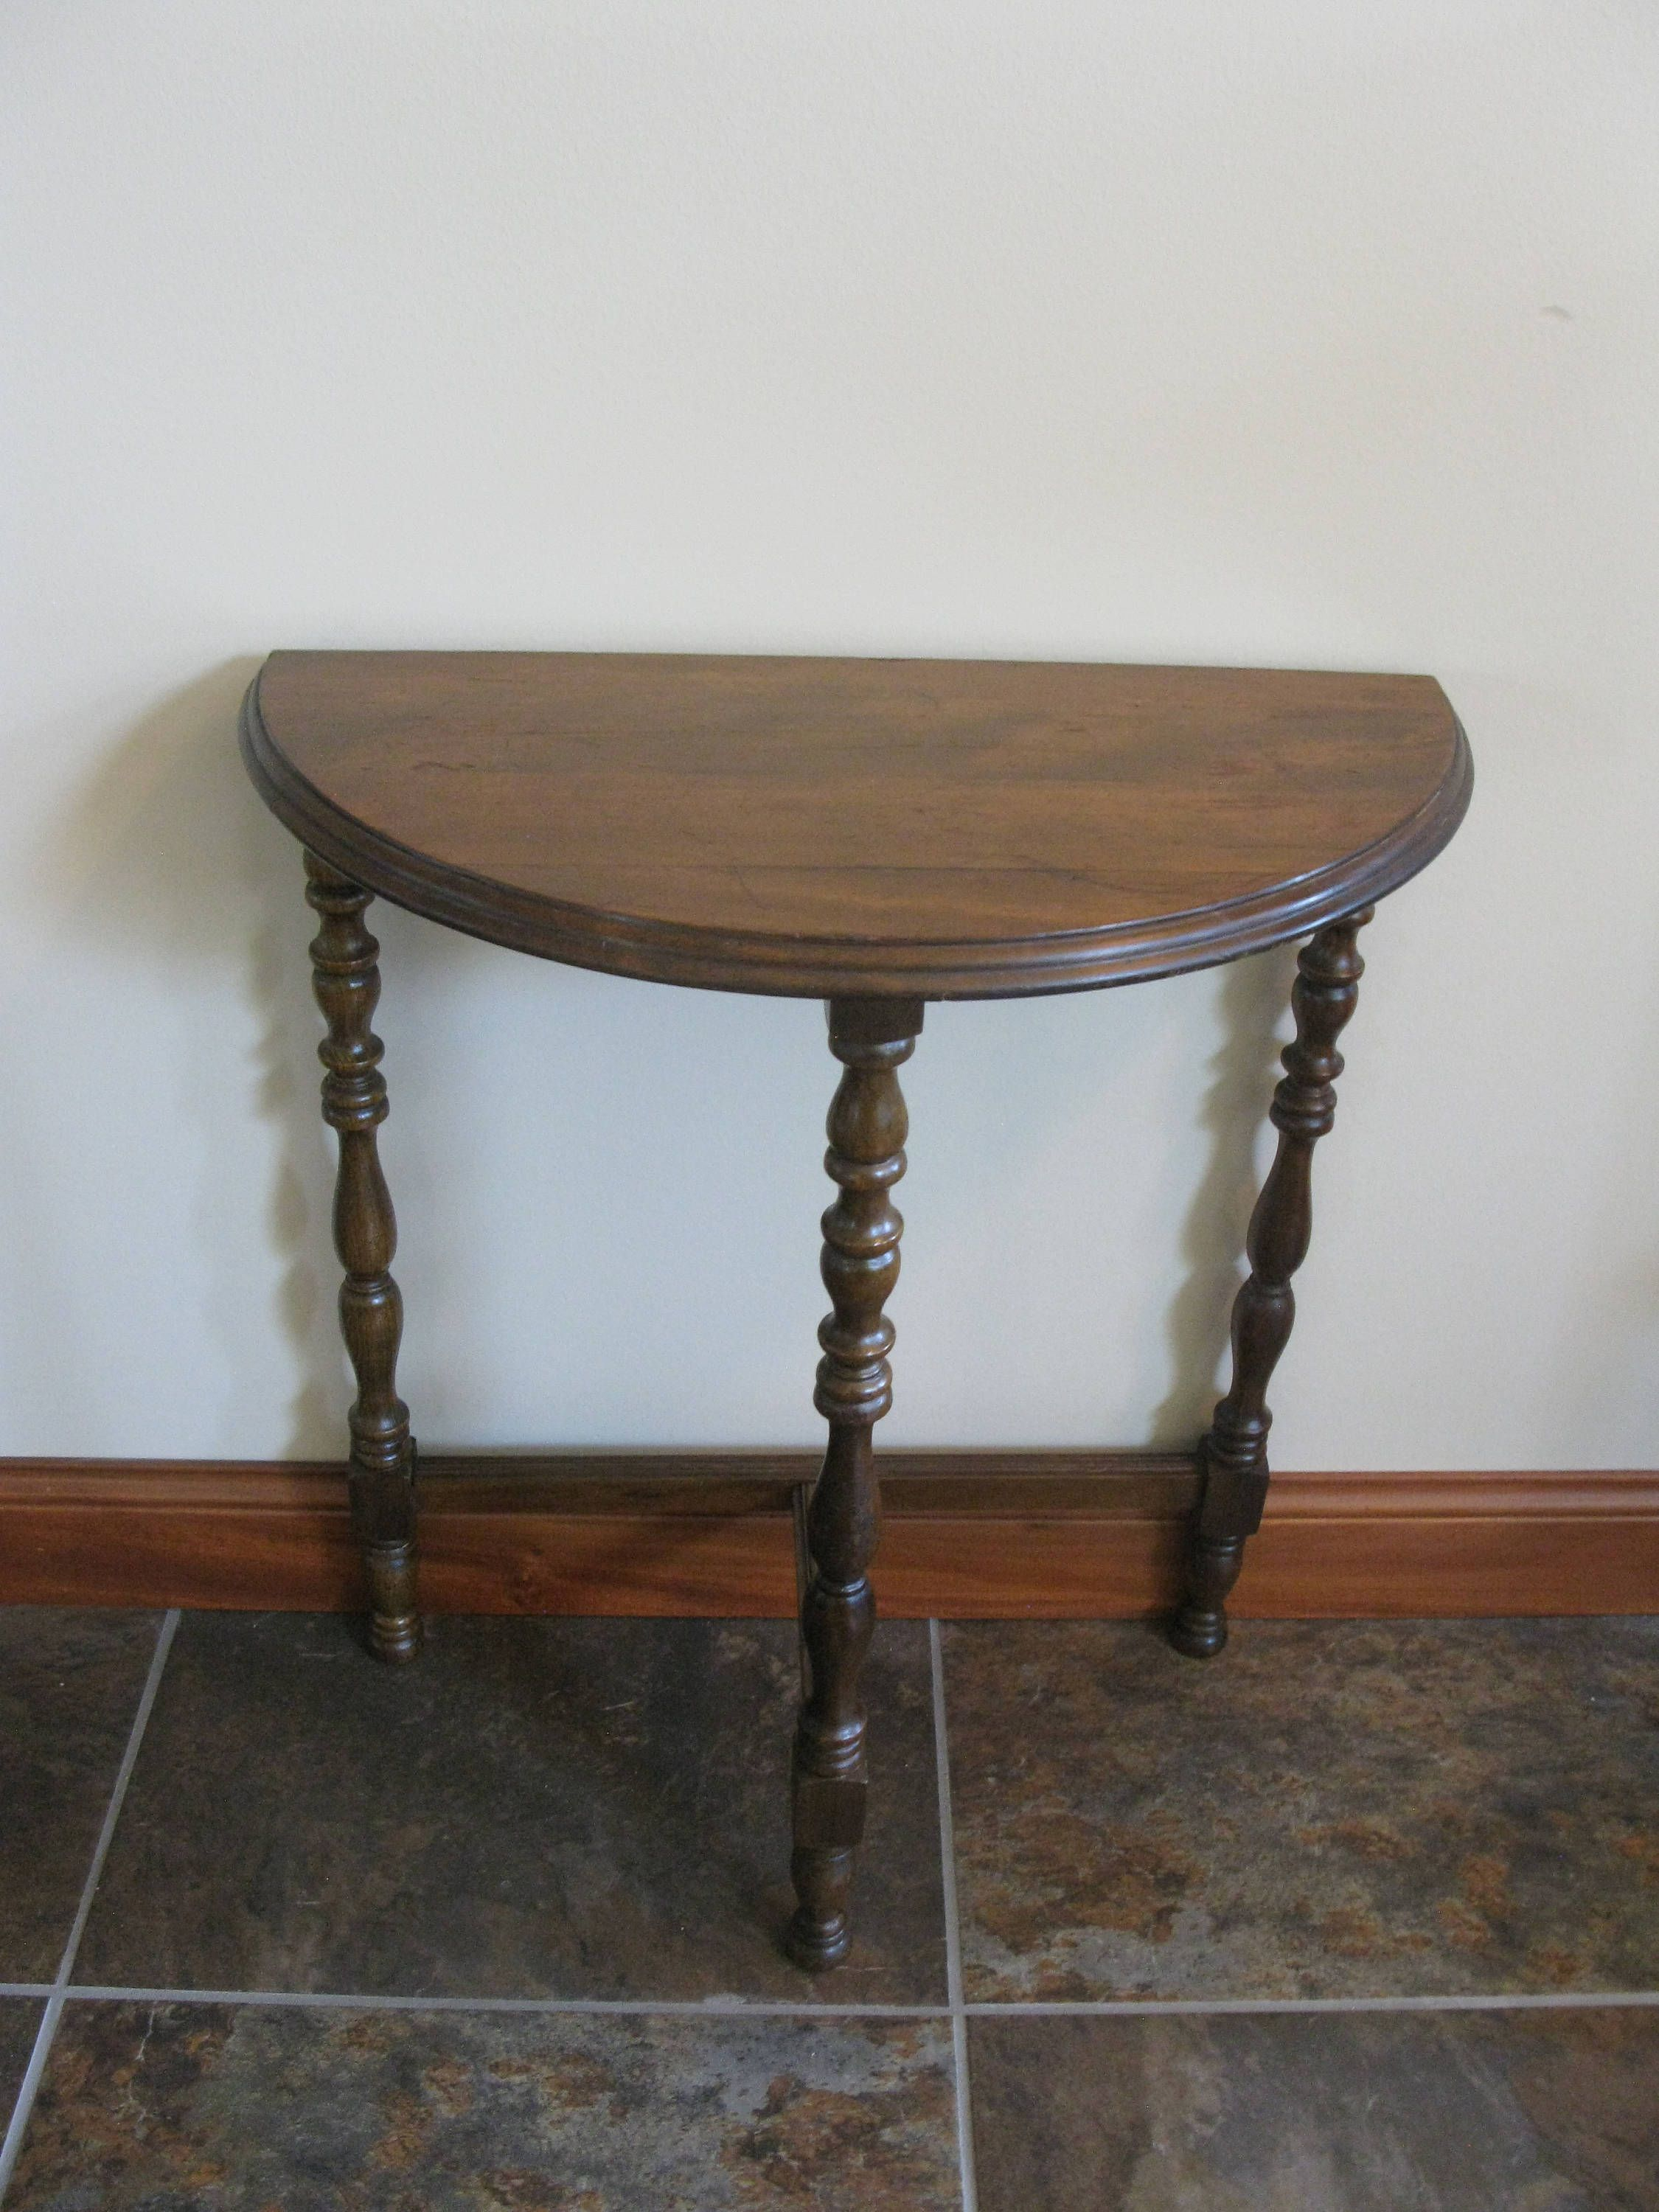 refurbished furniture probably perfect nice antique wood end vintage half moon side table legged small tables turned legs walnut stain round edge accent oakiesclaptrap etsy oval